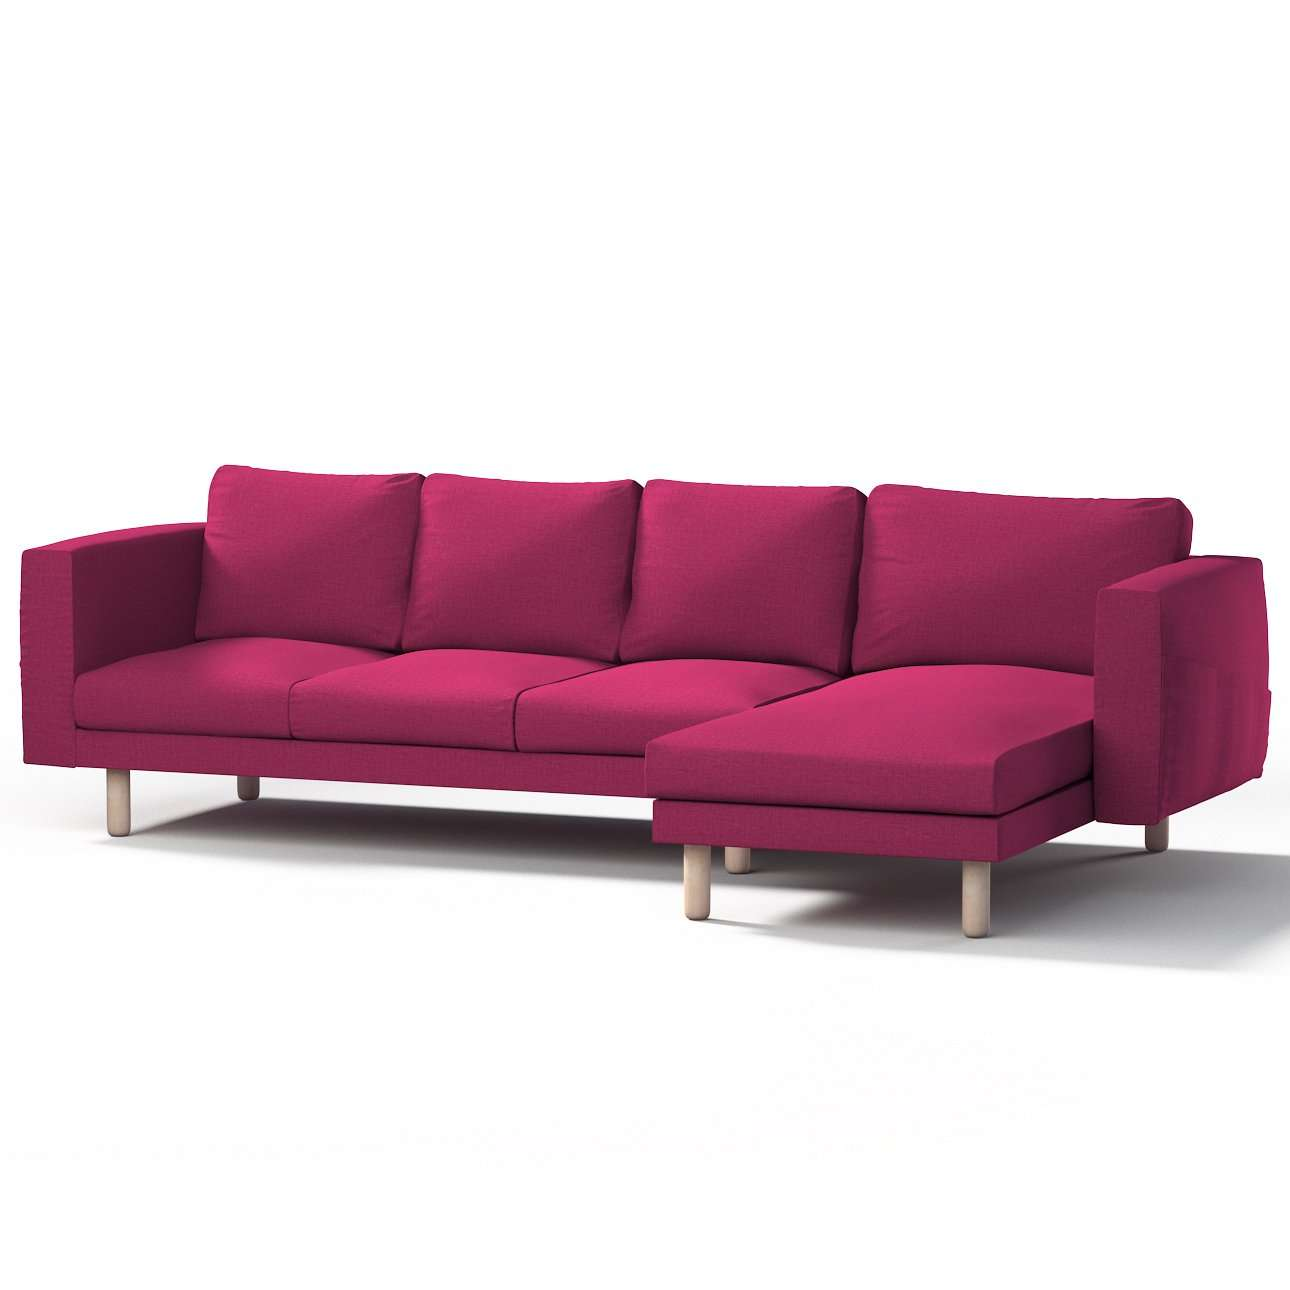 norsborg bezug f r 4 sitzer sofa mit recamiere rosa dekoria. Black Bedroom Furniture Sets. Home Design Ideas